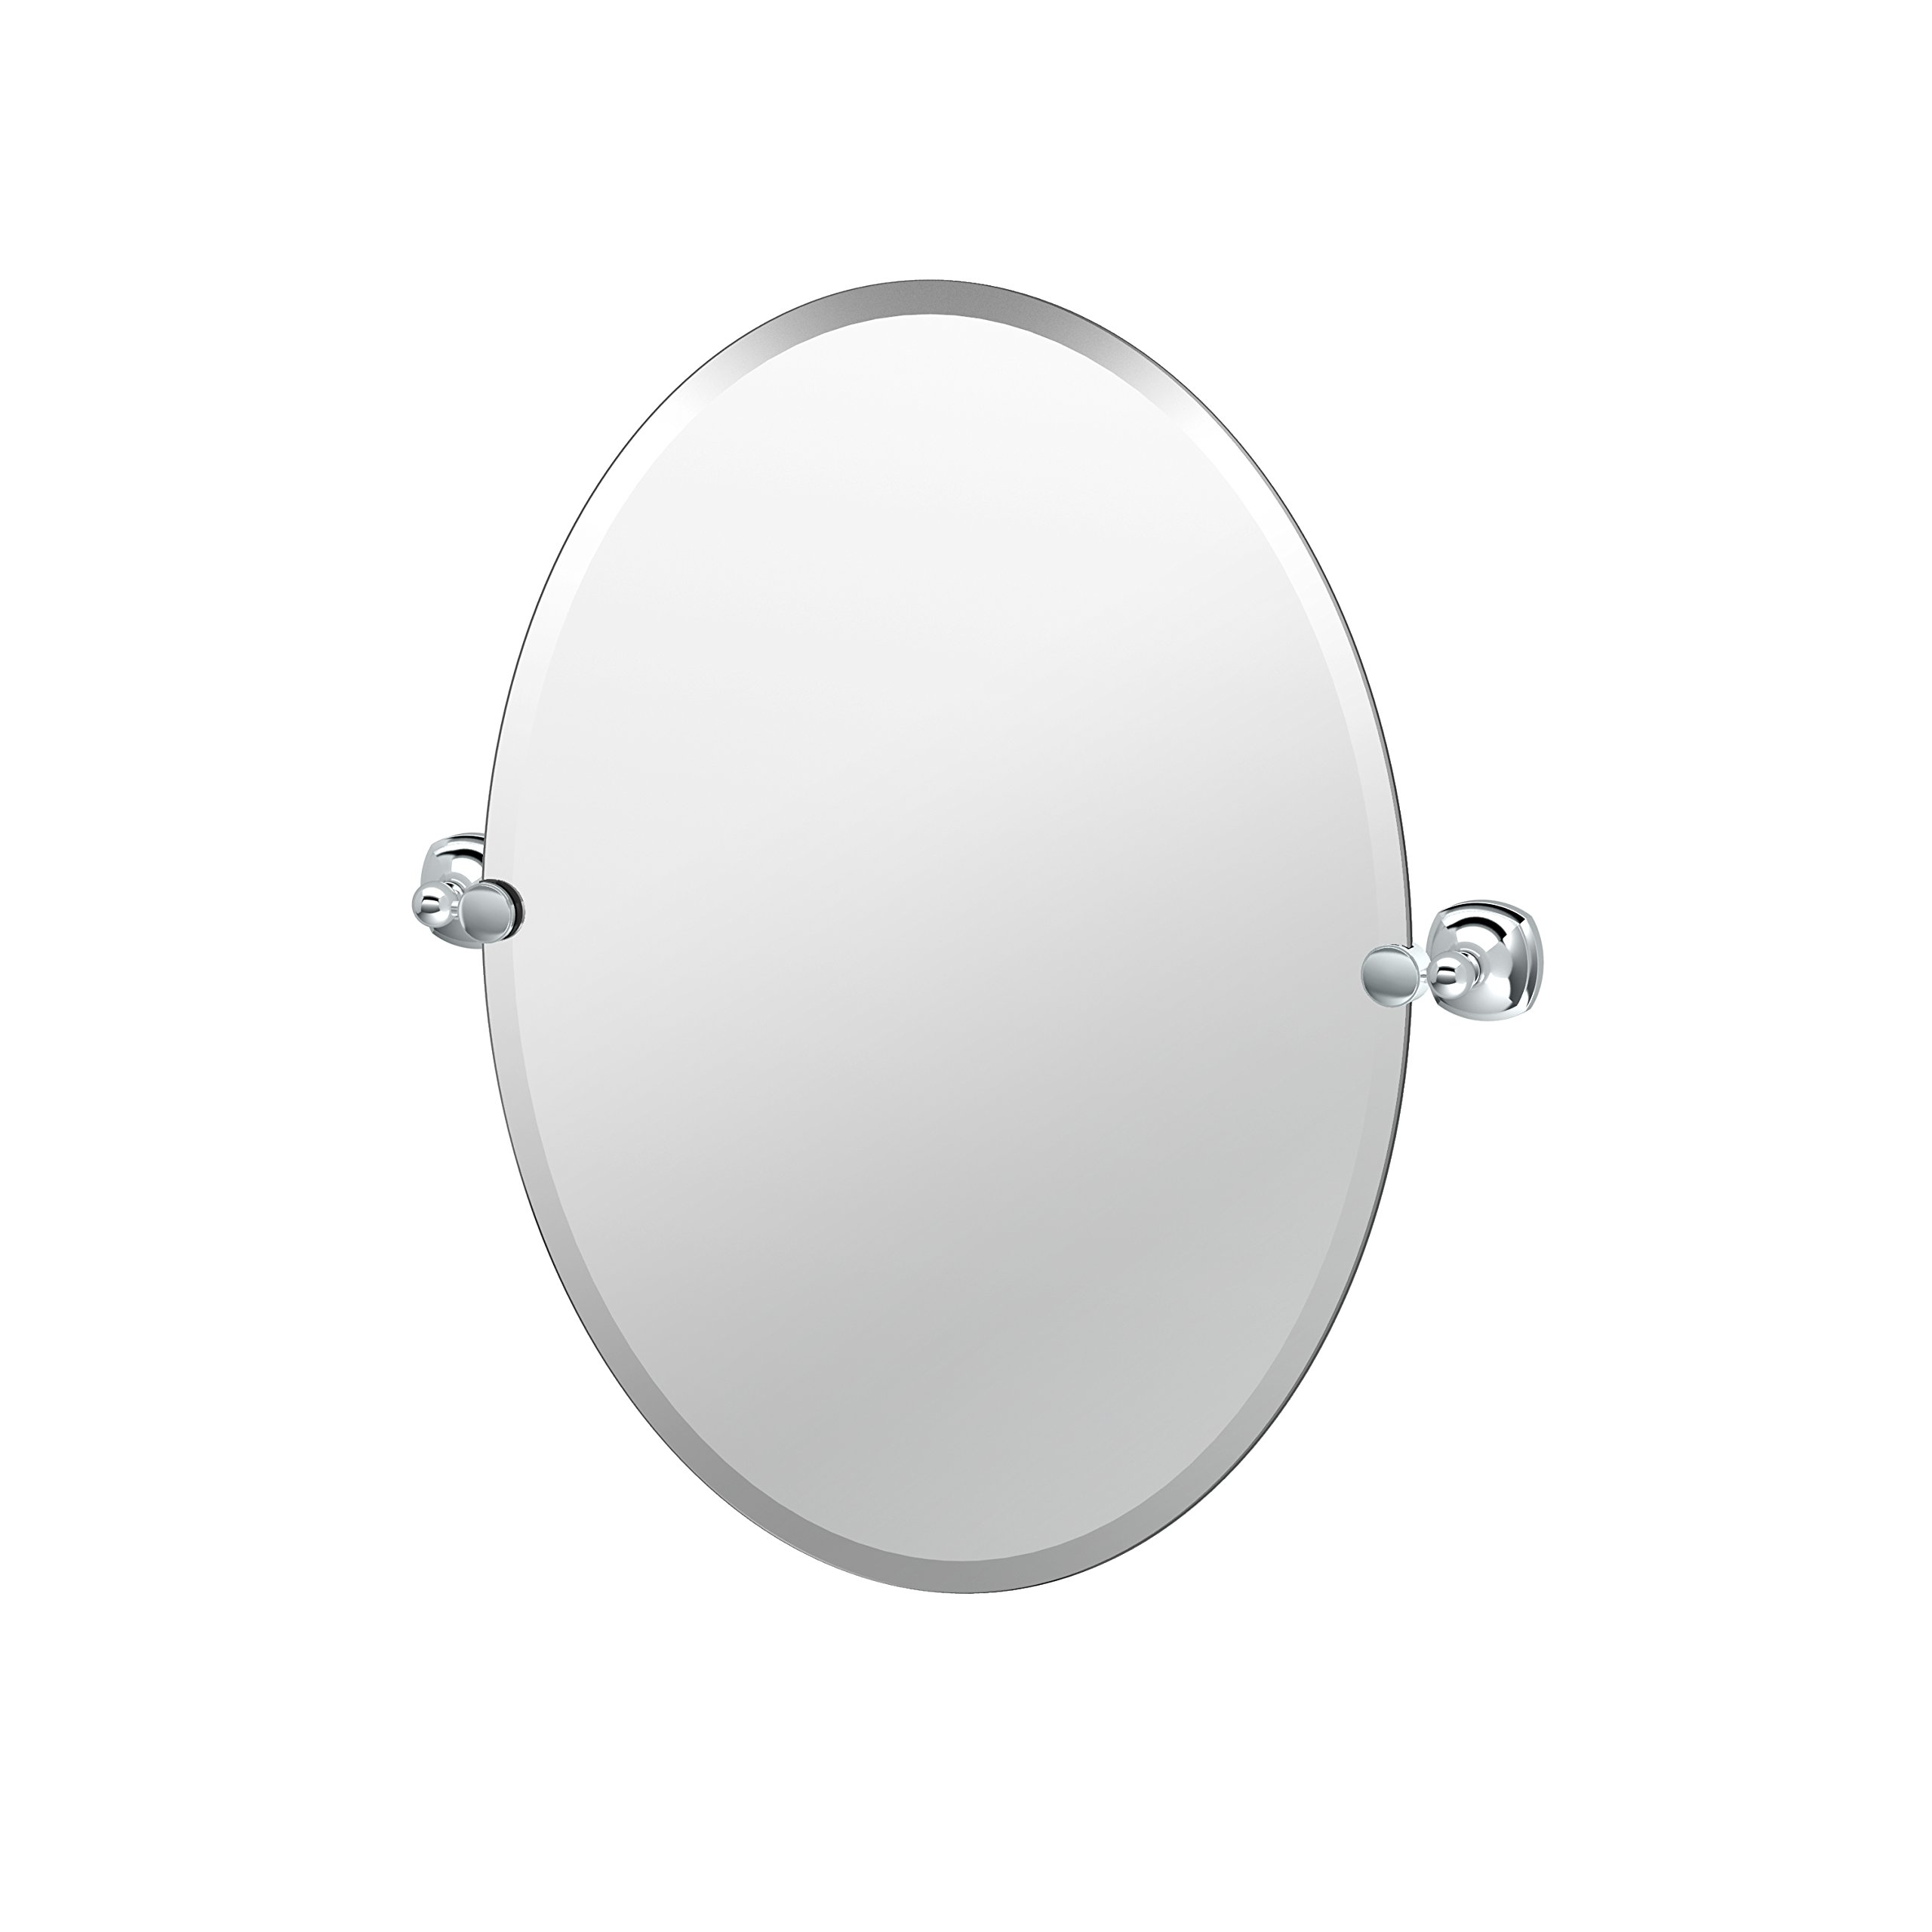 Gatco 4619 Lucerne Bathroom Oval Mirror, 26.5'', Chrome